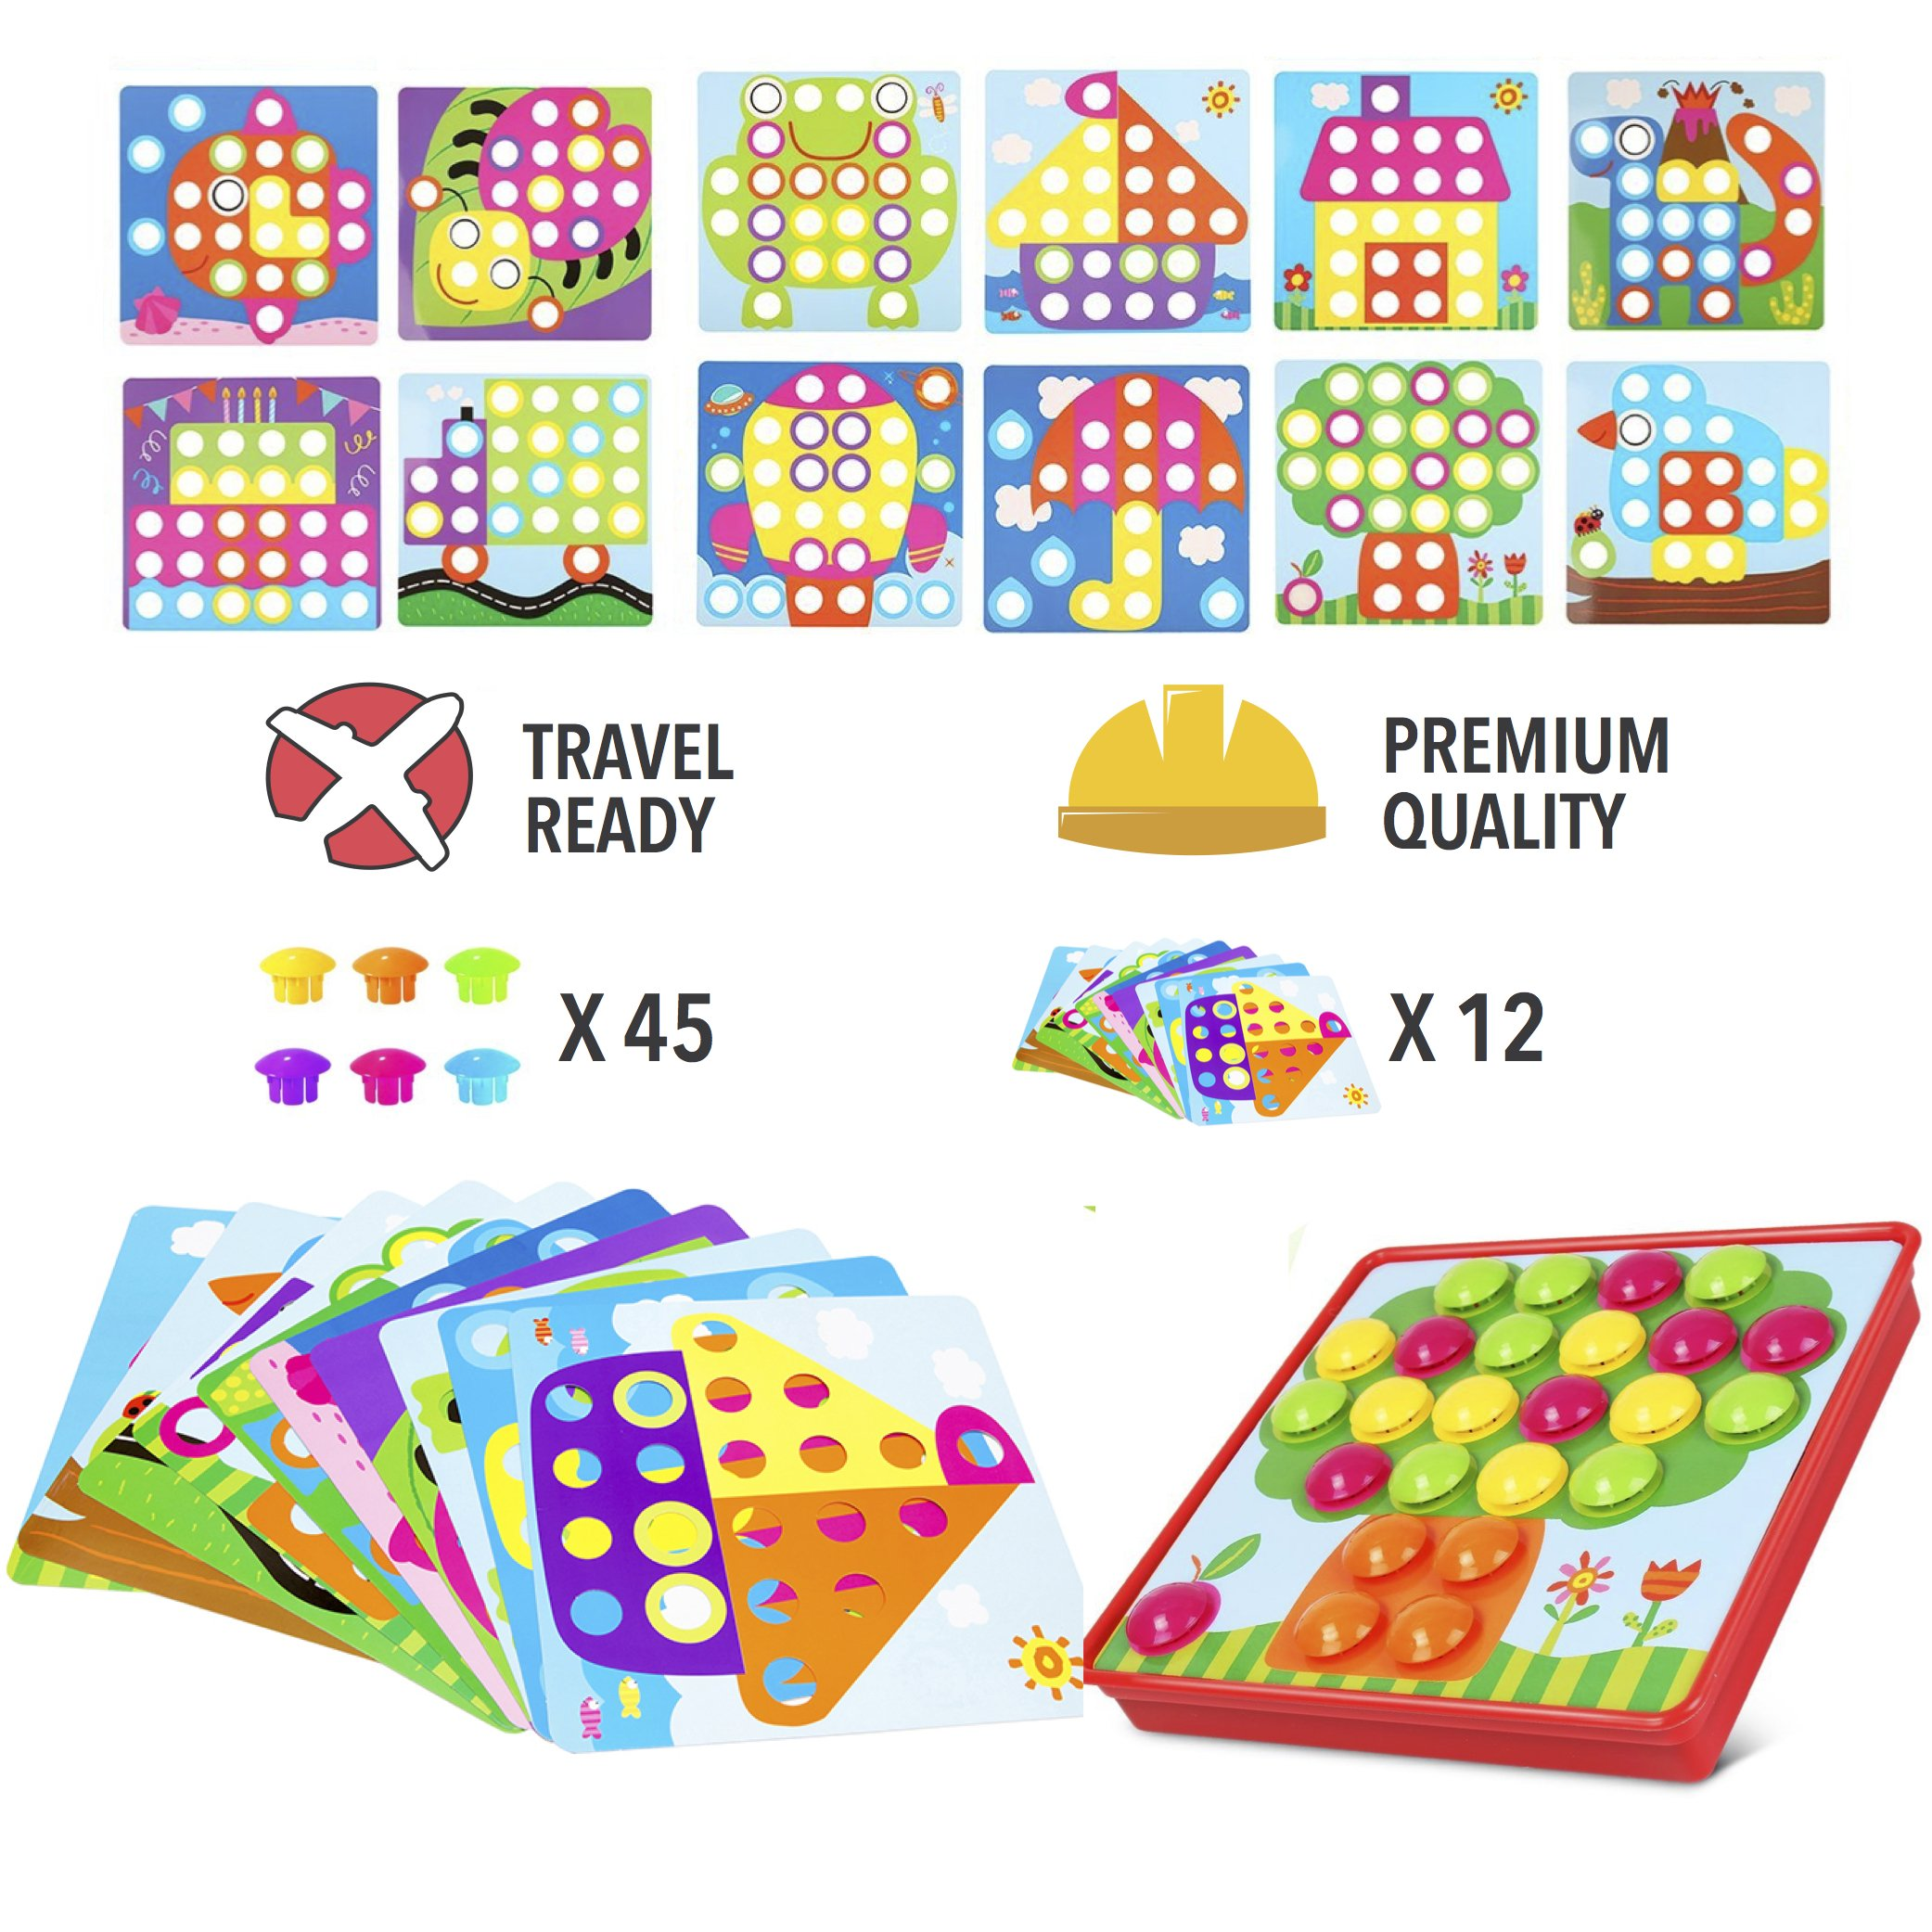 PinSpace Button Art Color Mushrooms Nails Matching Mosaic Pegboard Puzzle Games with 12 Templates, Fine Motor Skills Game,Best gift for Boys and Girls